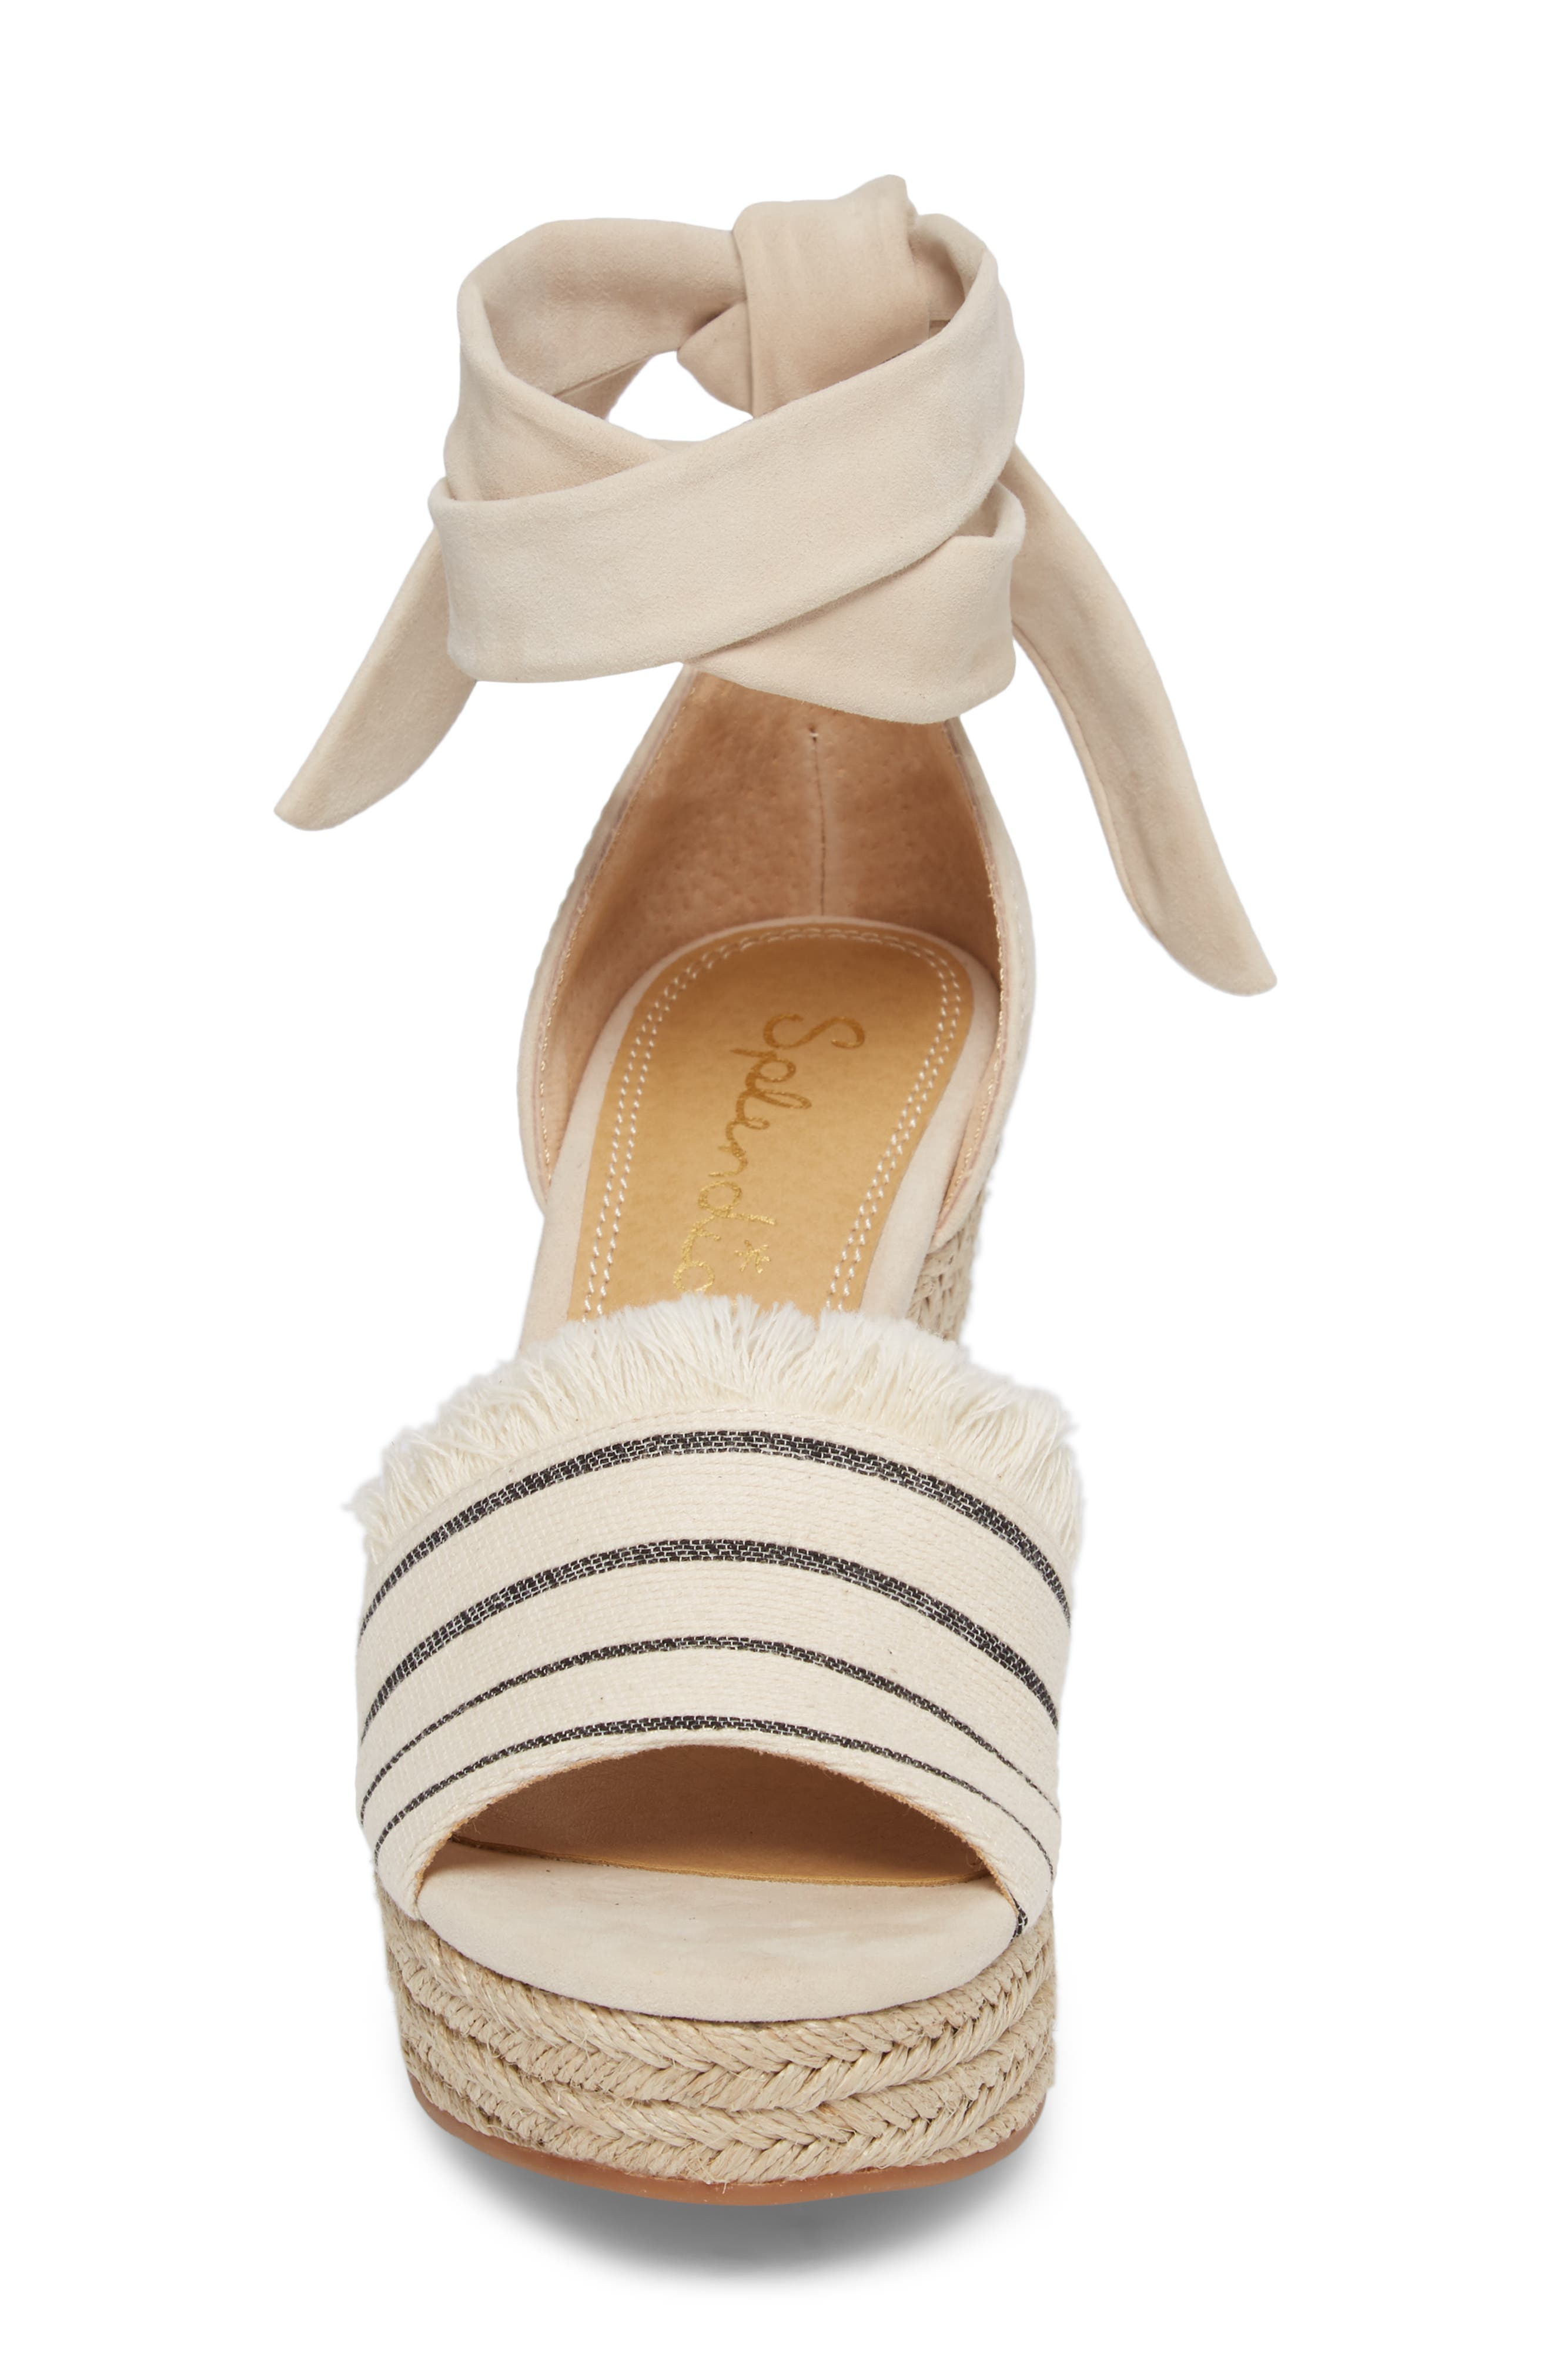 Barke Fringed Platform Wedge Sandal,                             Alternate thumbnail 4, color,                             100